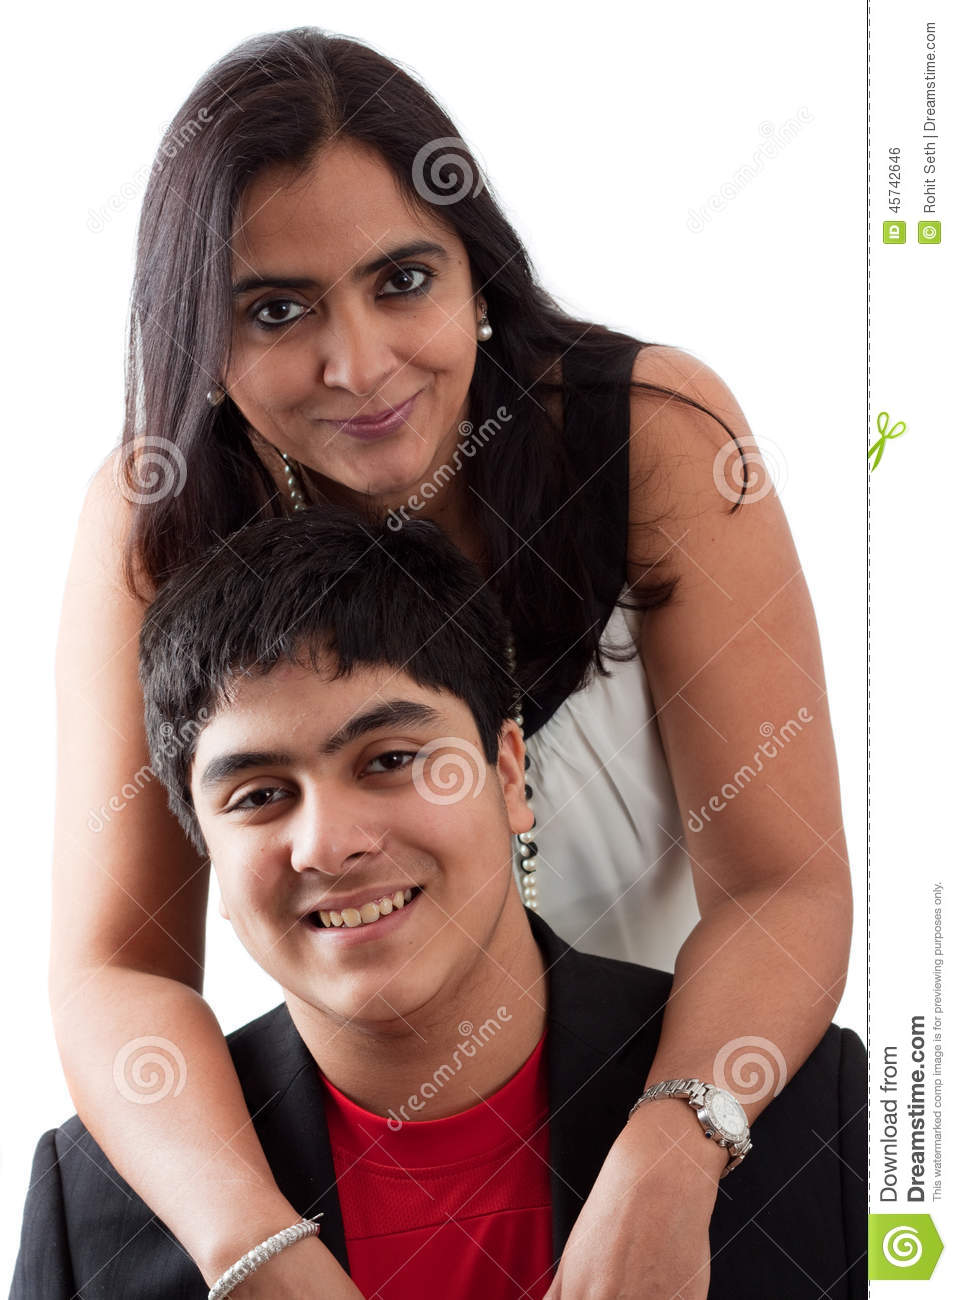 indian son dating white girl Understanding the asian-girl-white-guy relationship multiculturalism and tagged asian, couples, dating, inter-racial dating, language between us we have a son.